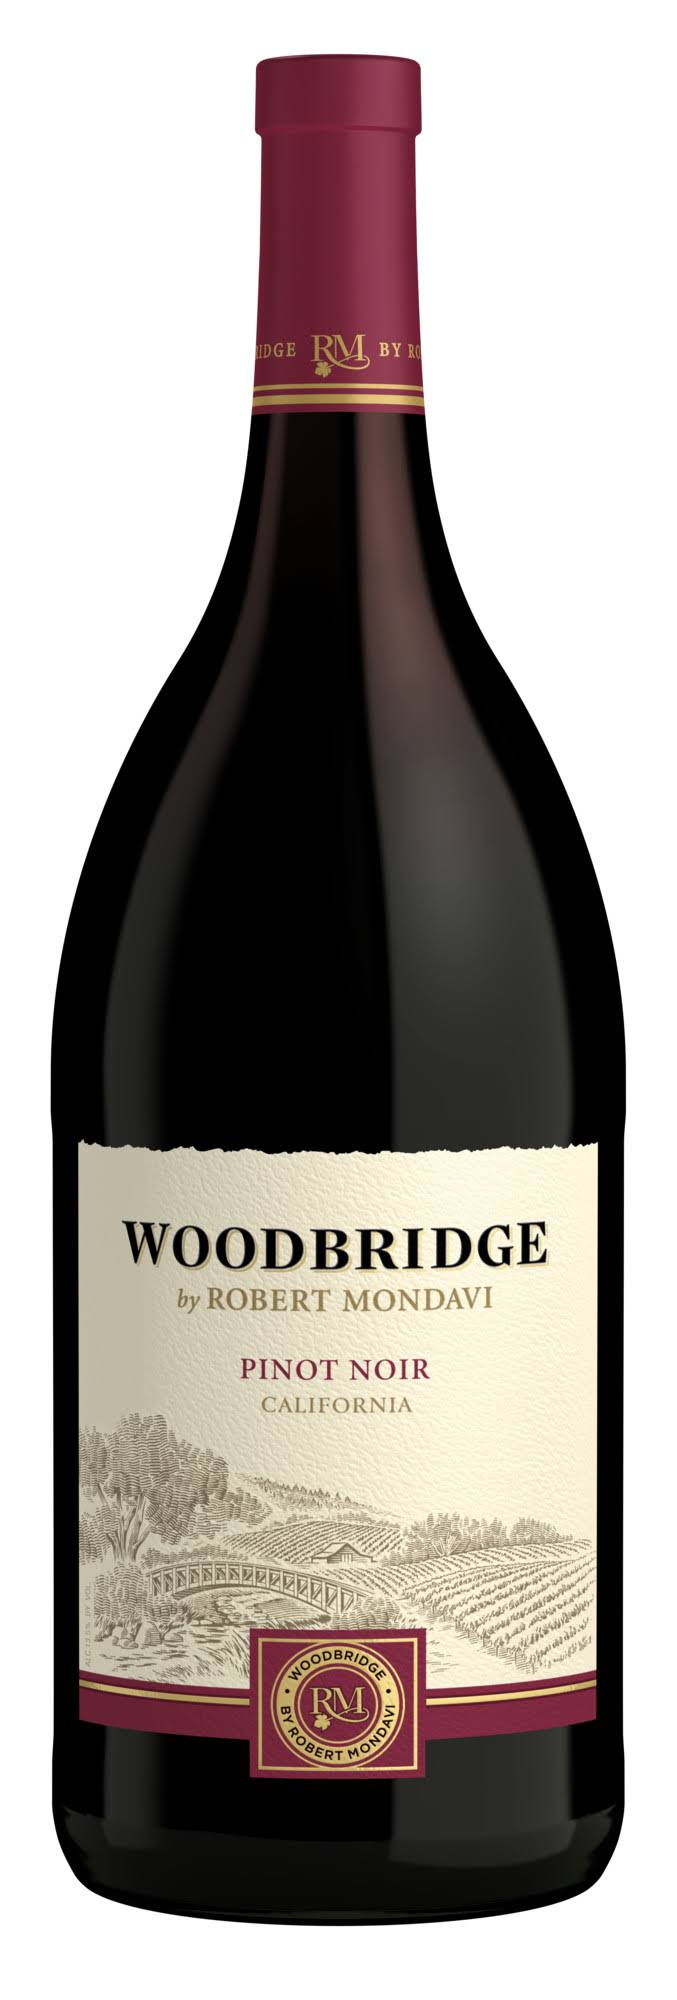 Woodbridge By Robert Mondavi Pinot Noir - 2006